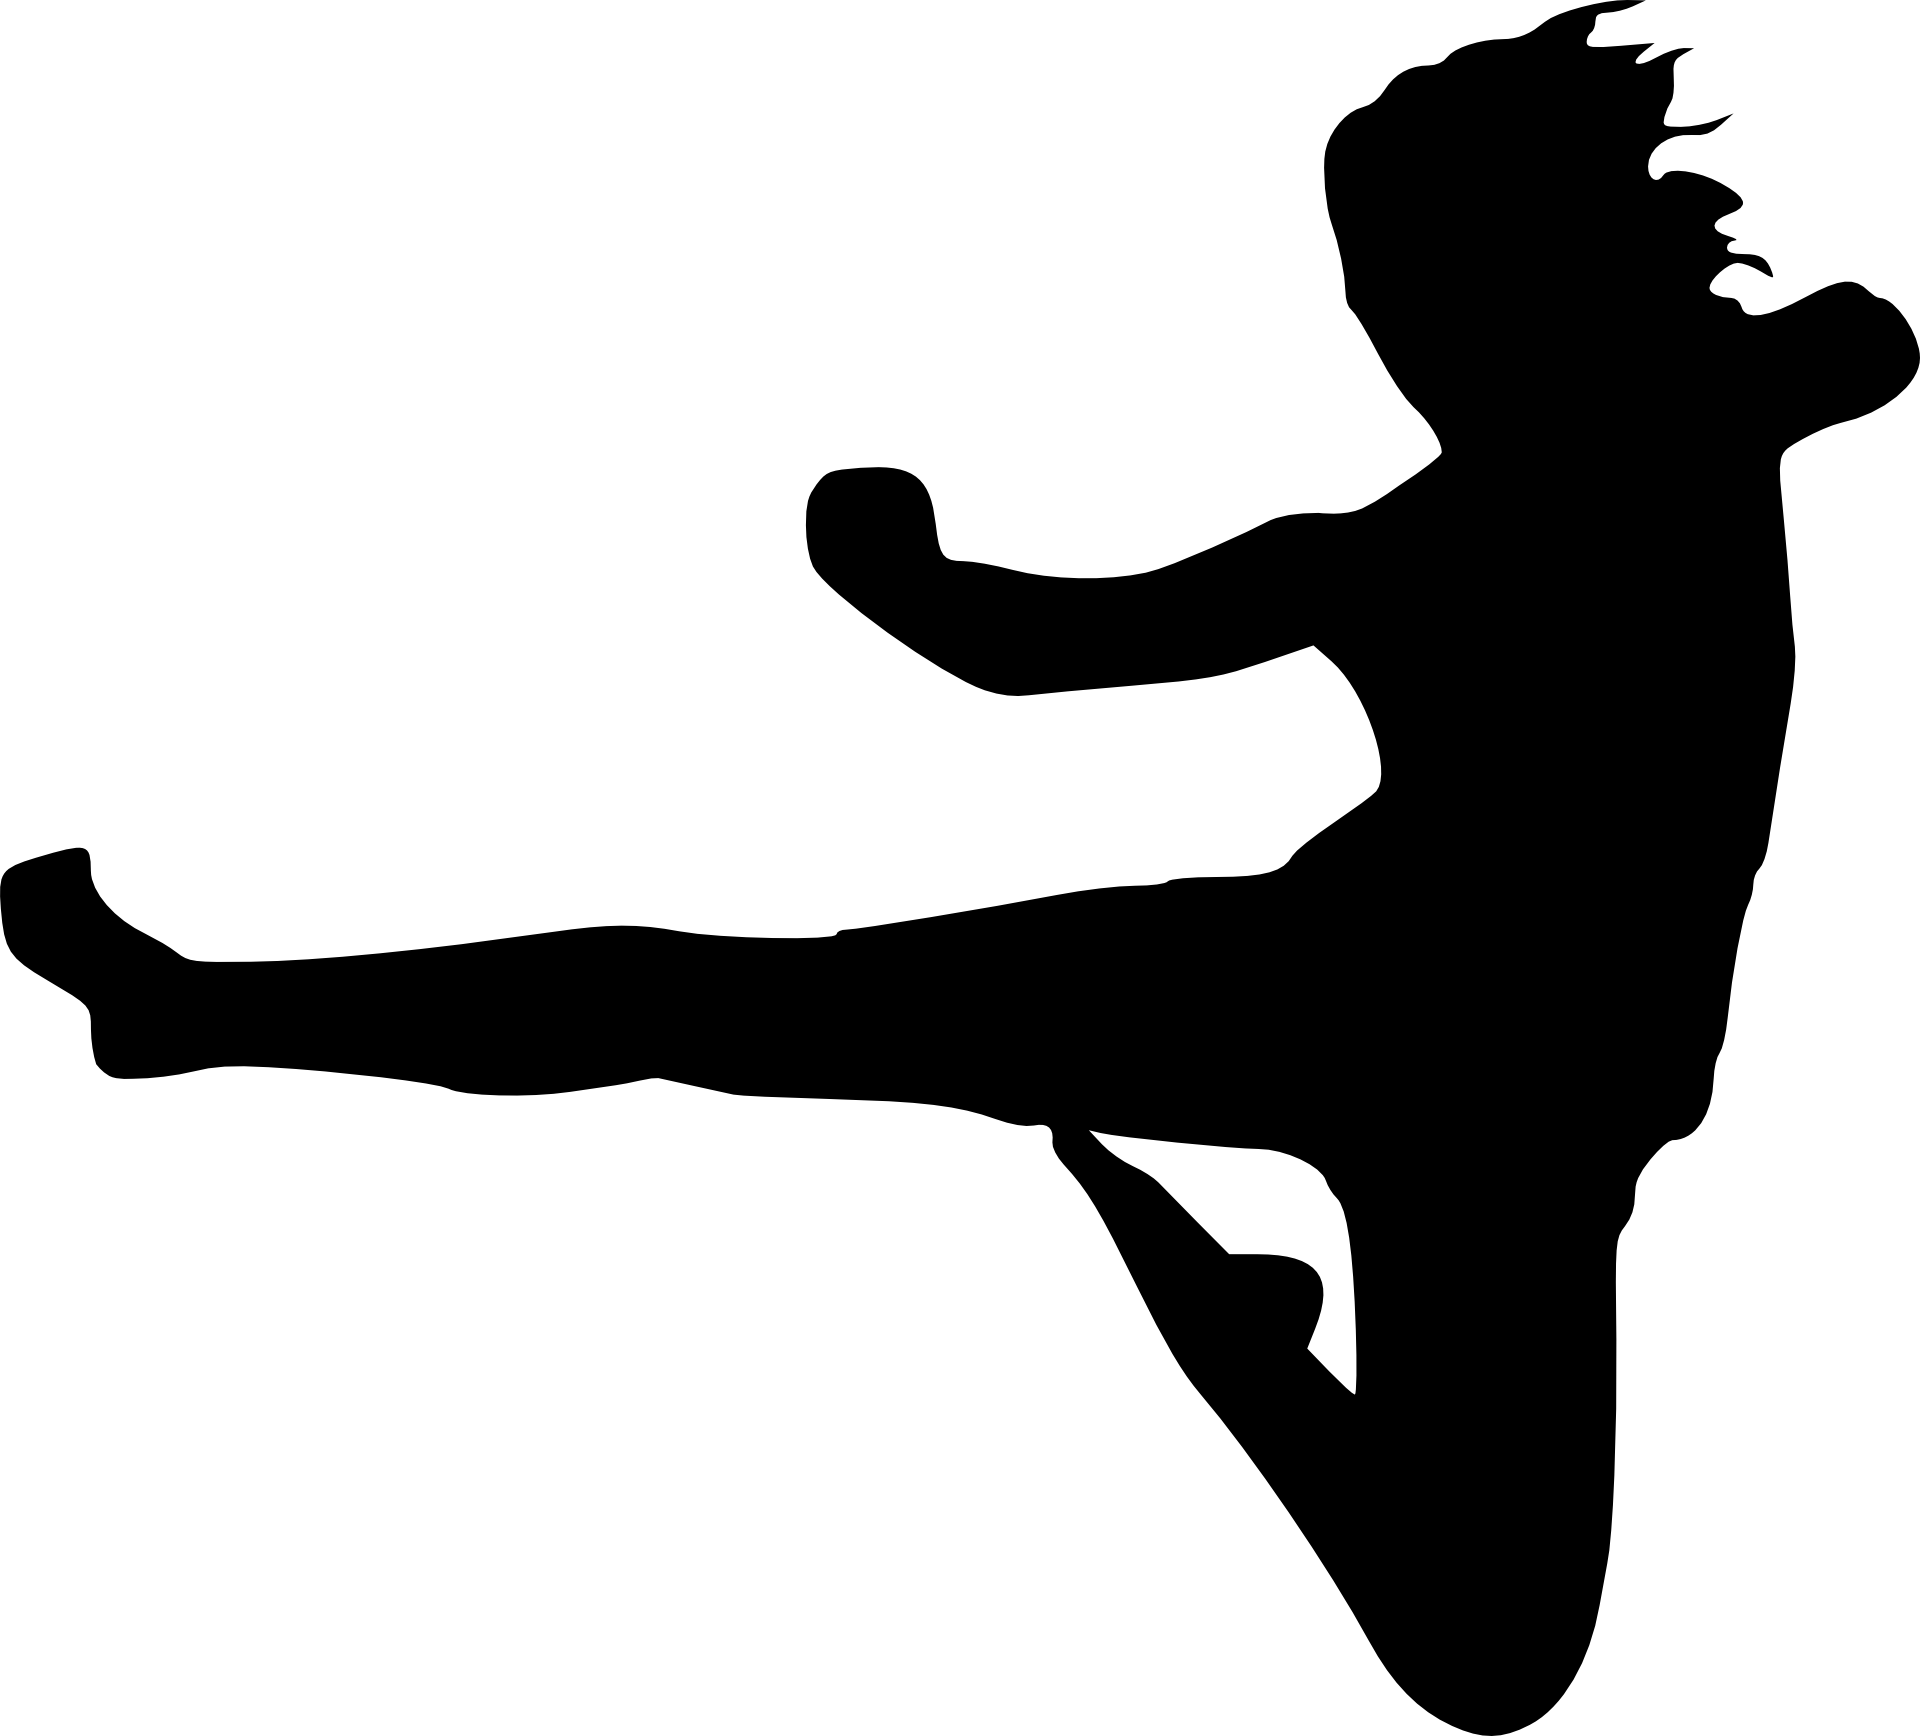 1920x1736 Karate Kick Martial Arts Clip Art